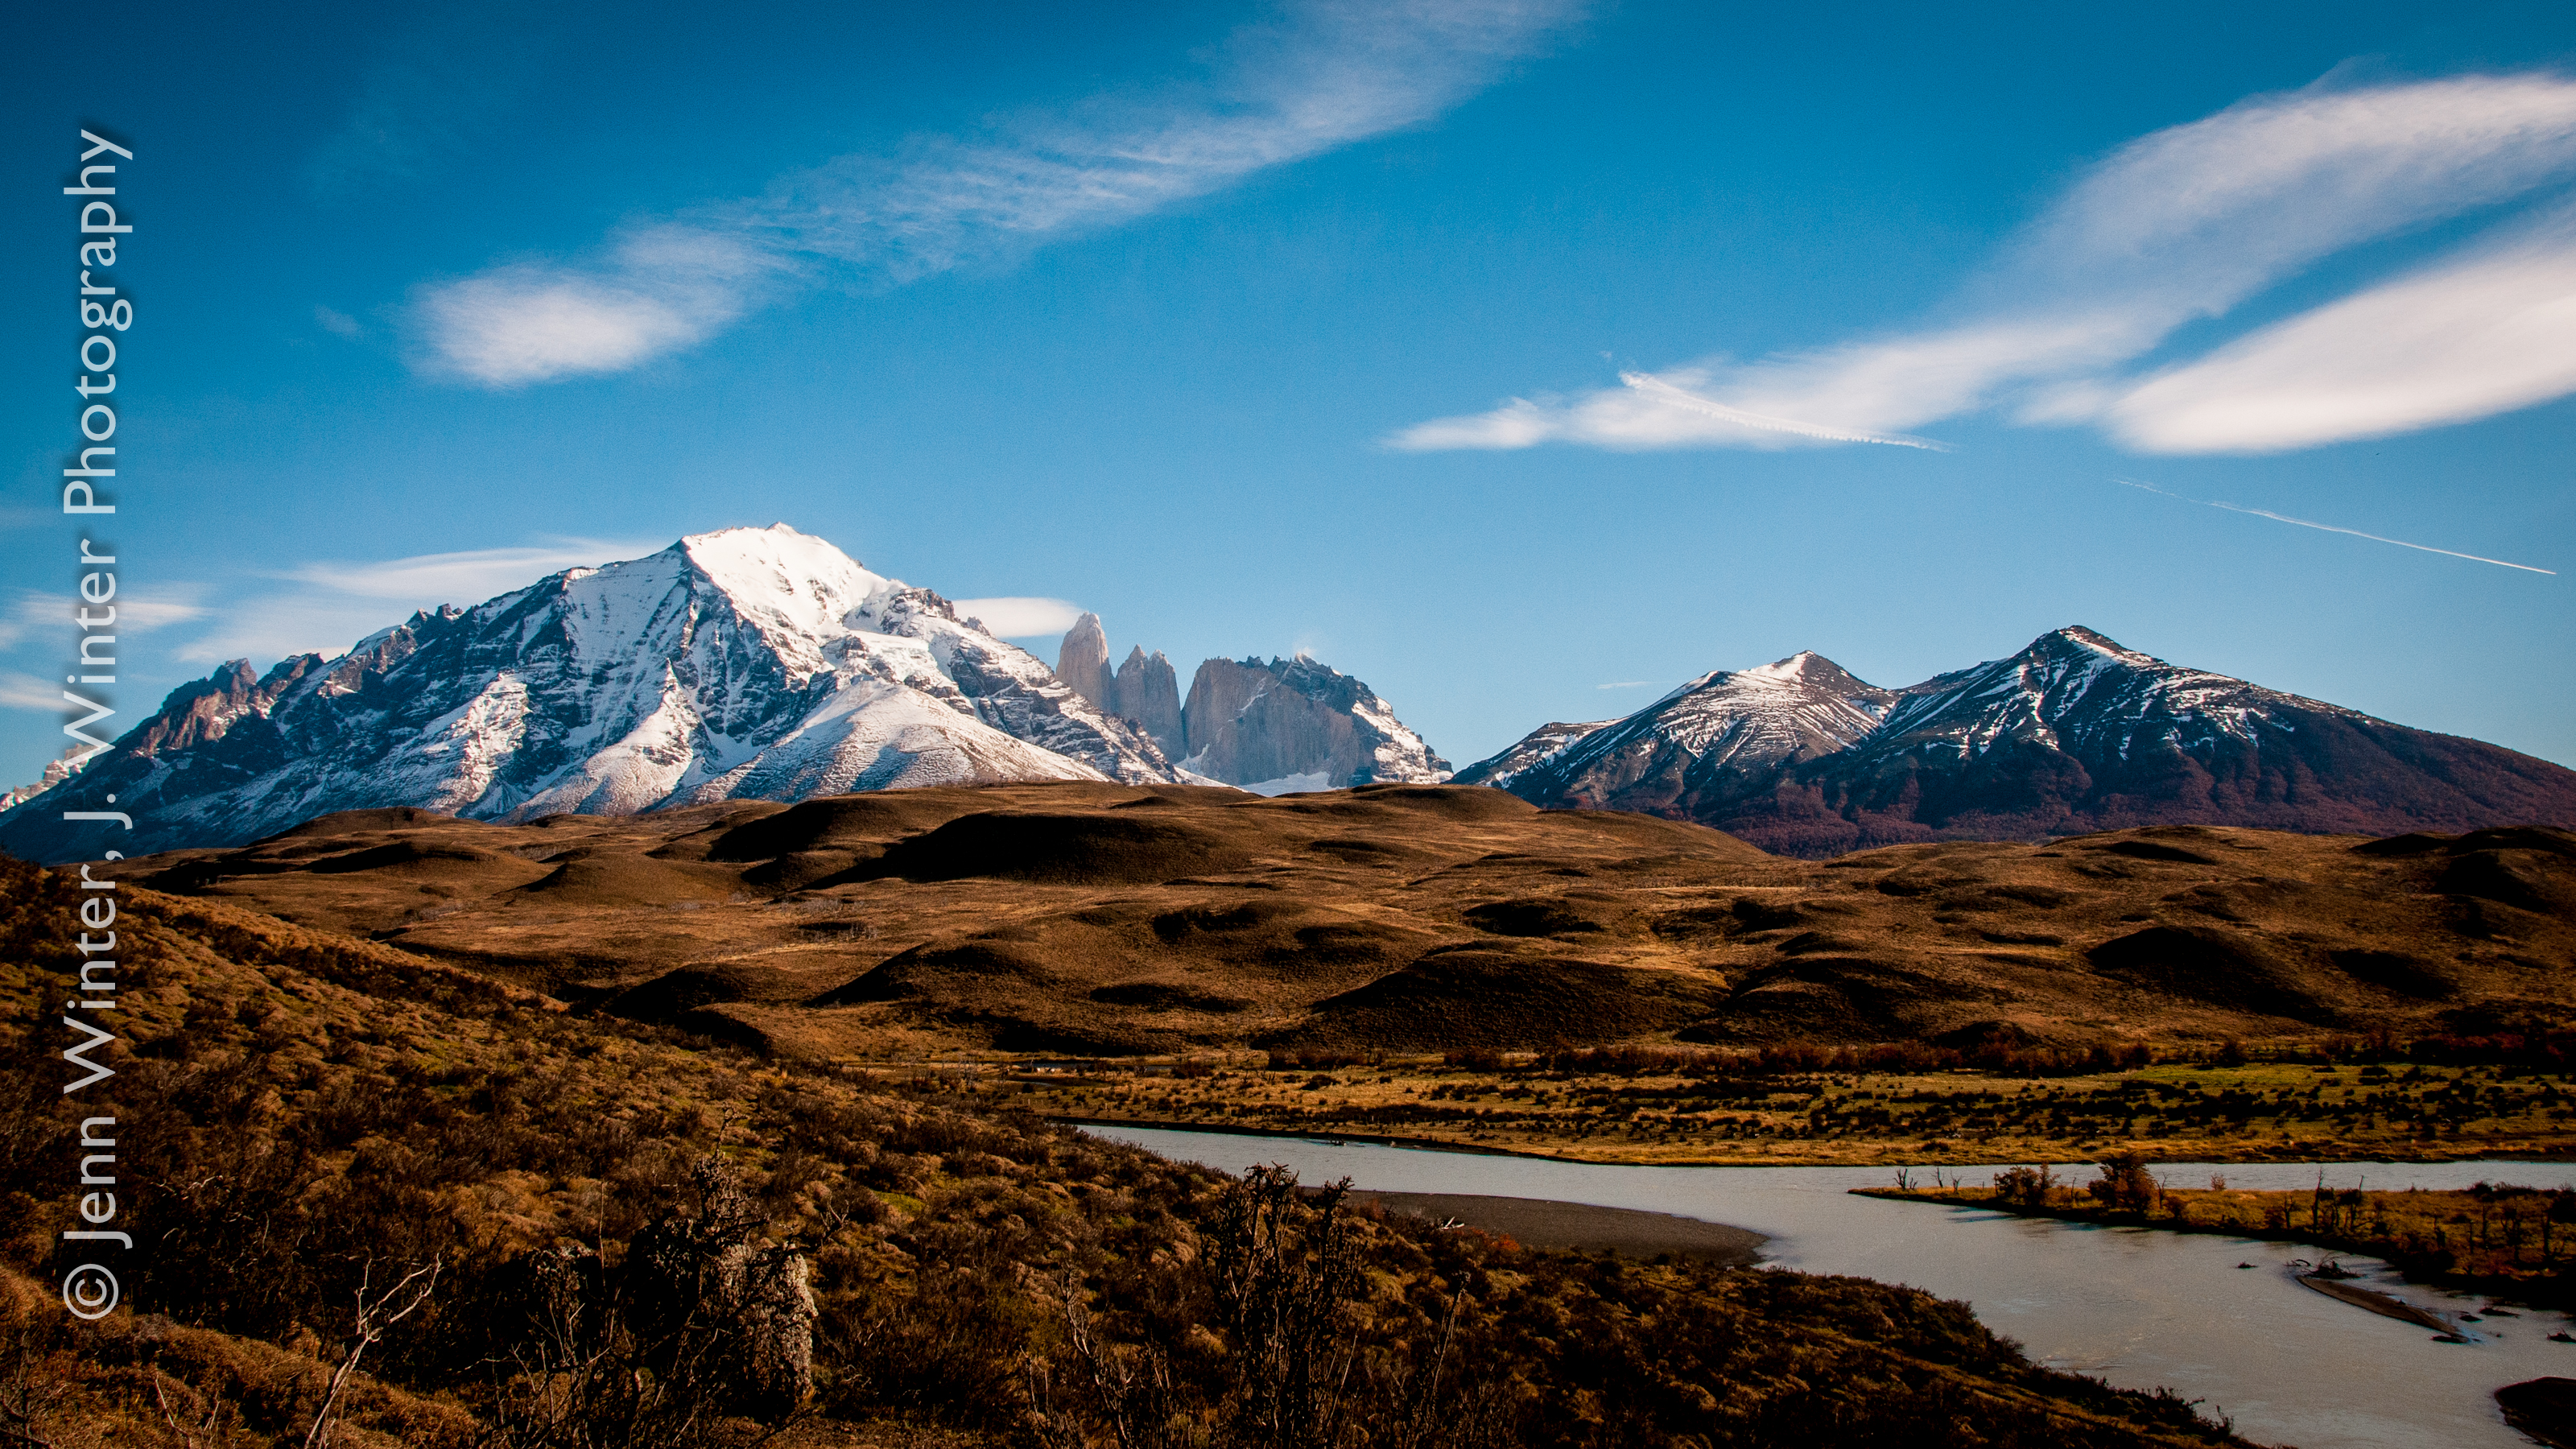 Patagonia: Where Scenery Compliments Wardrobe